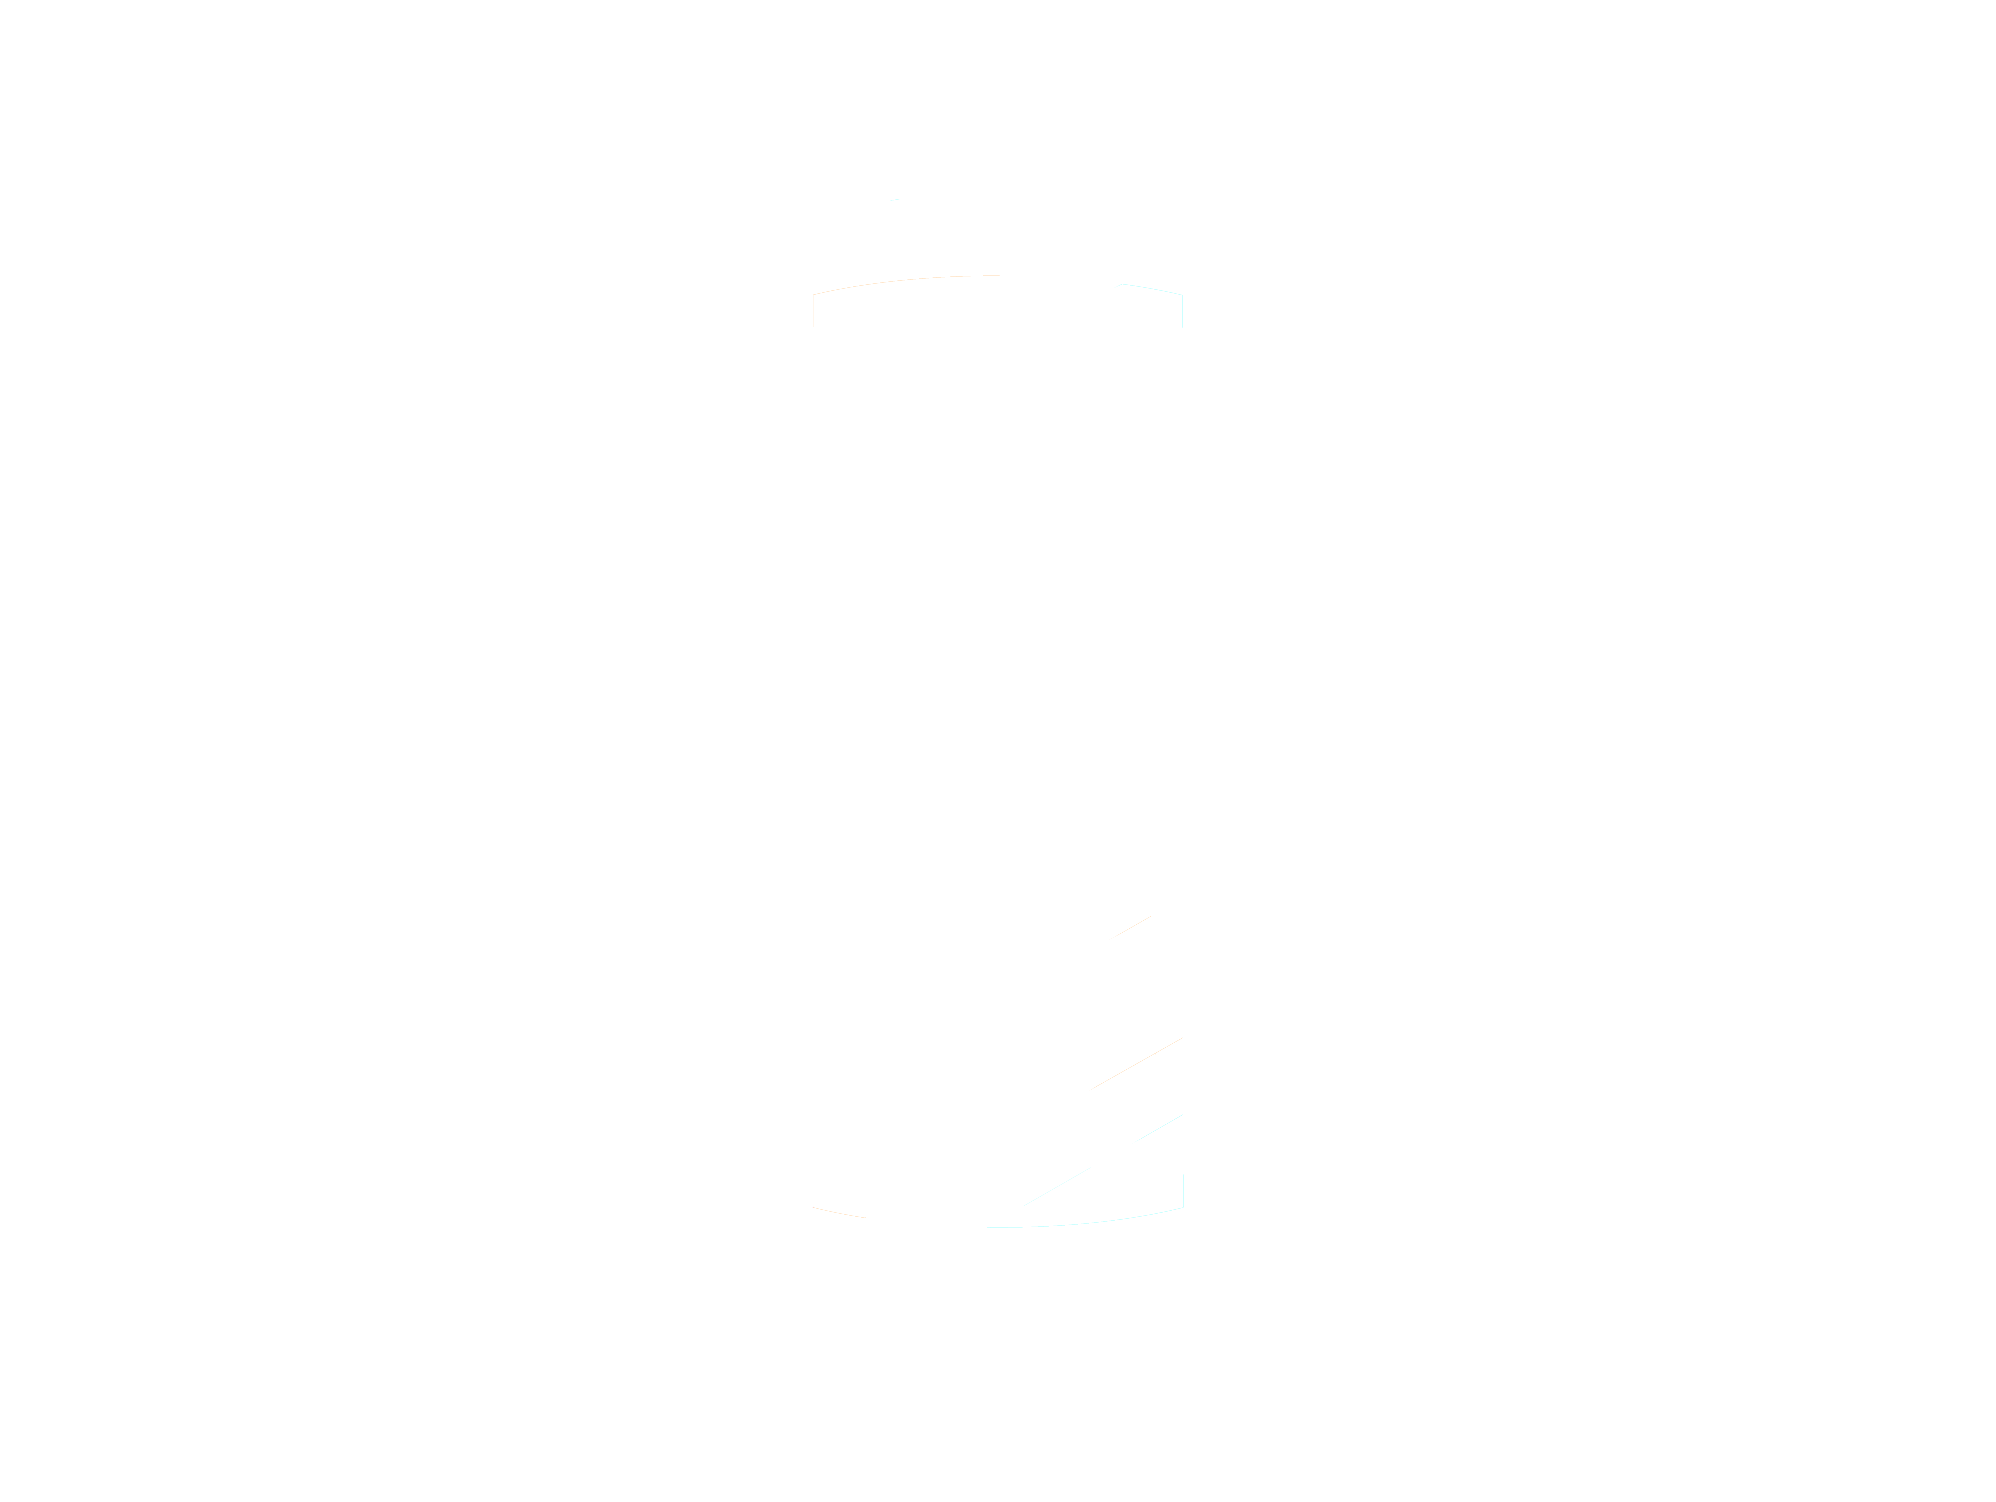 JLo The Barber